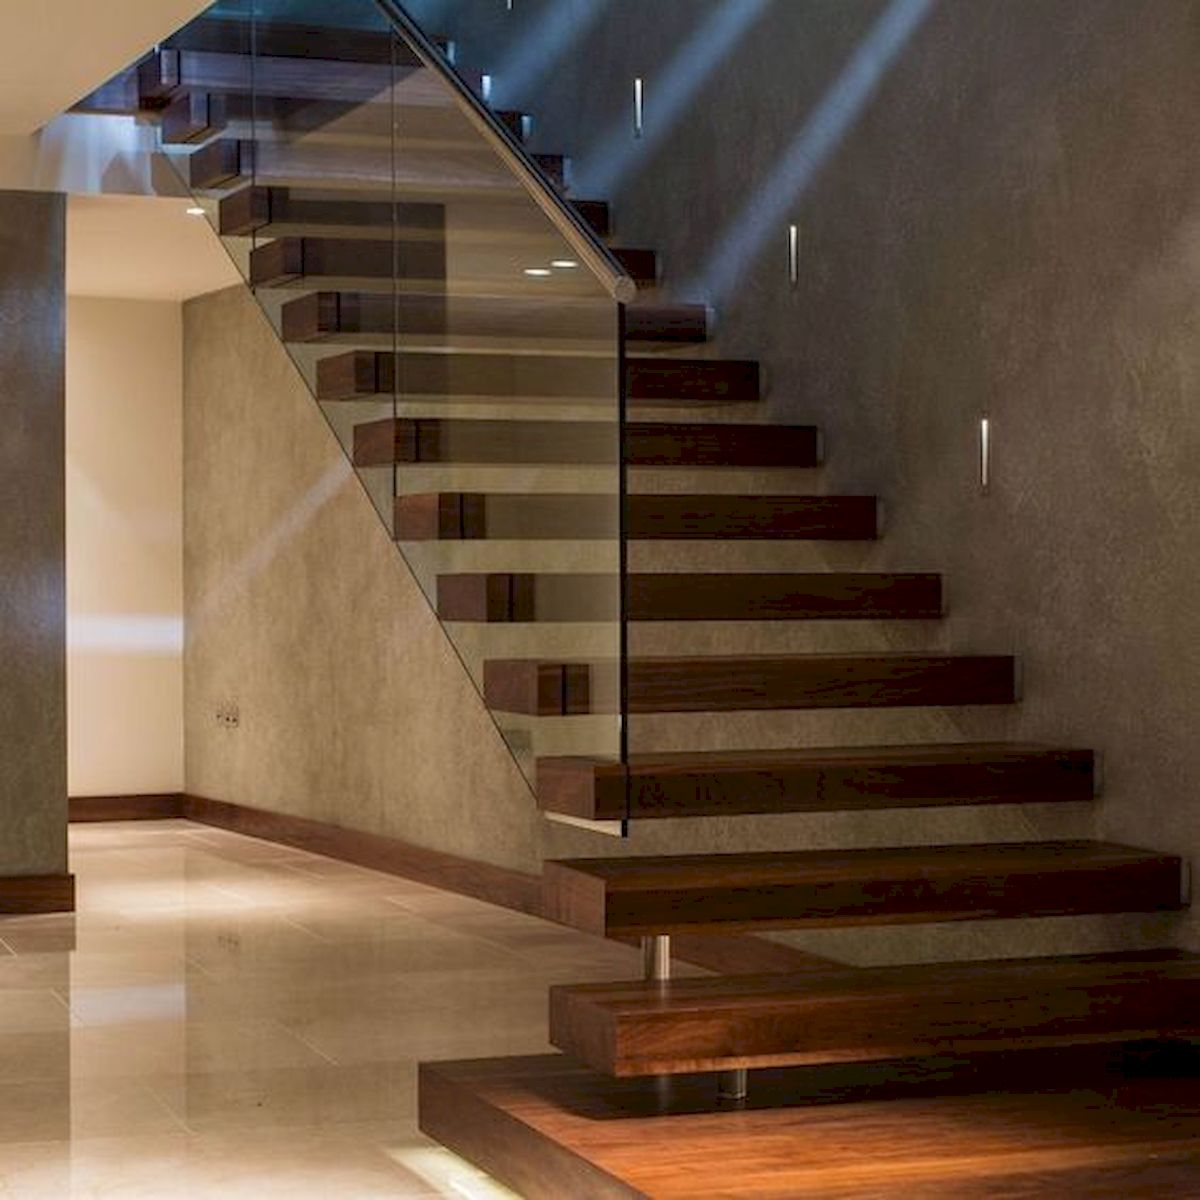 30 Awesome Wooden Stairs Design Ideas For Your Home (27)